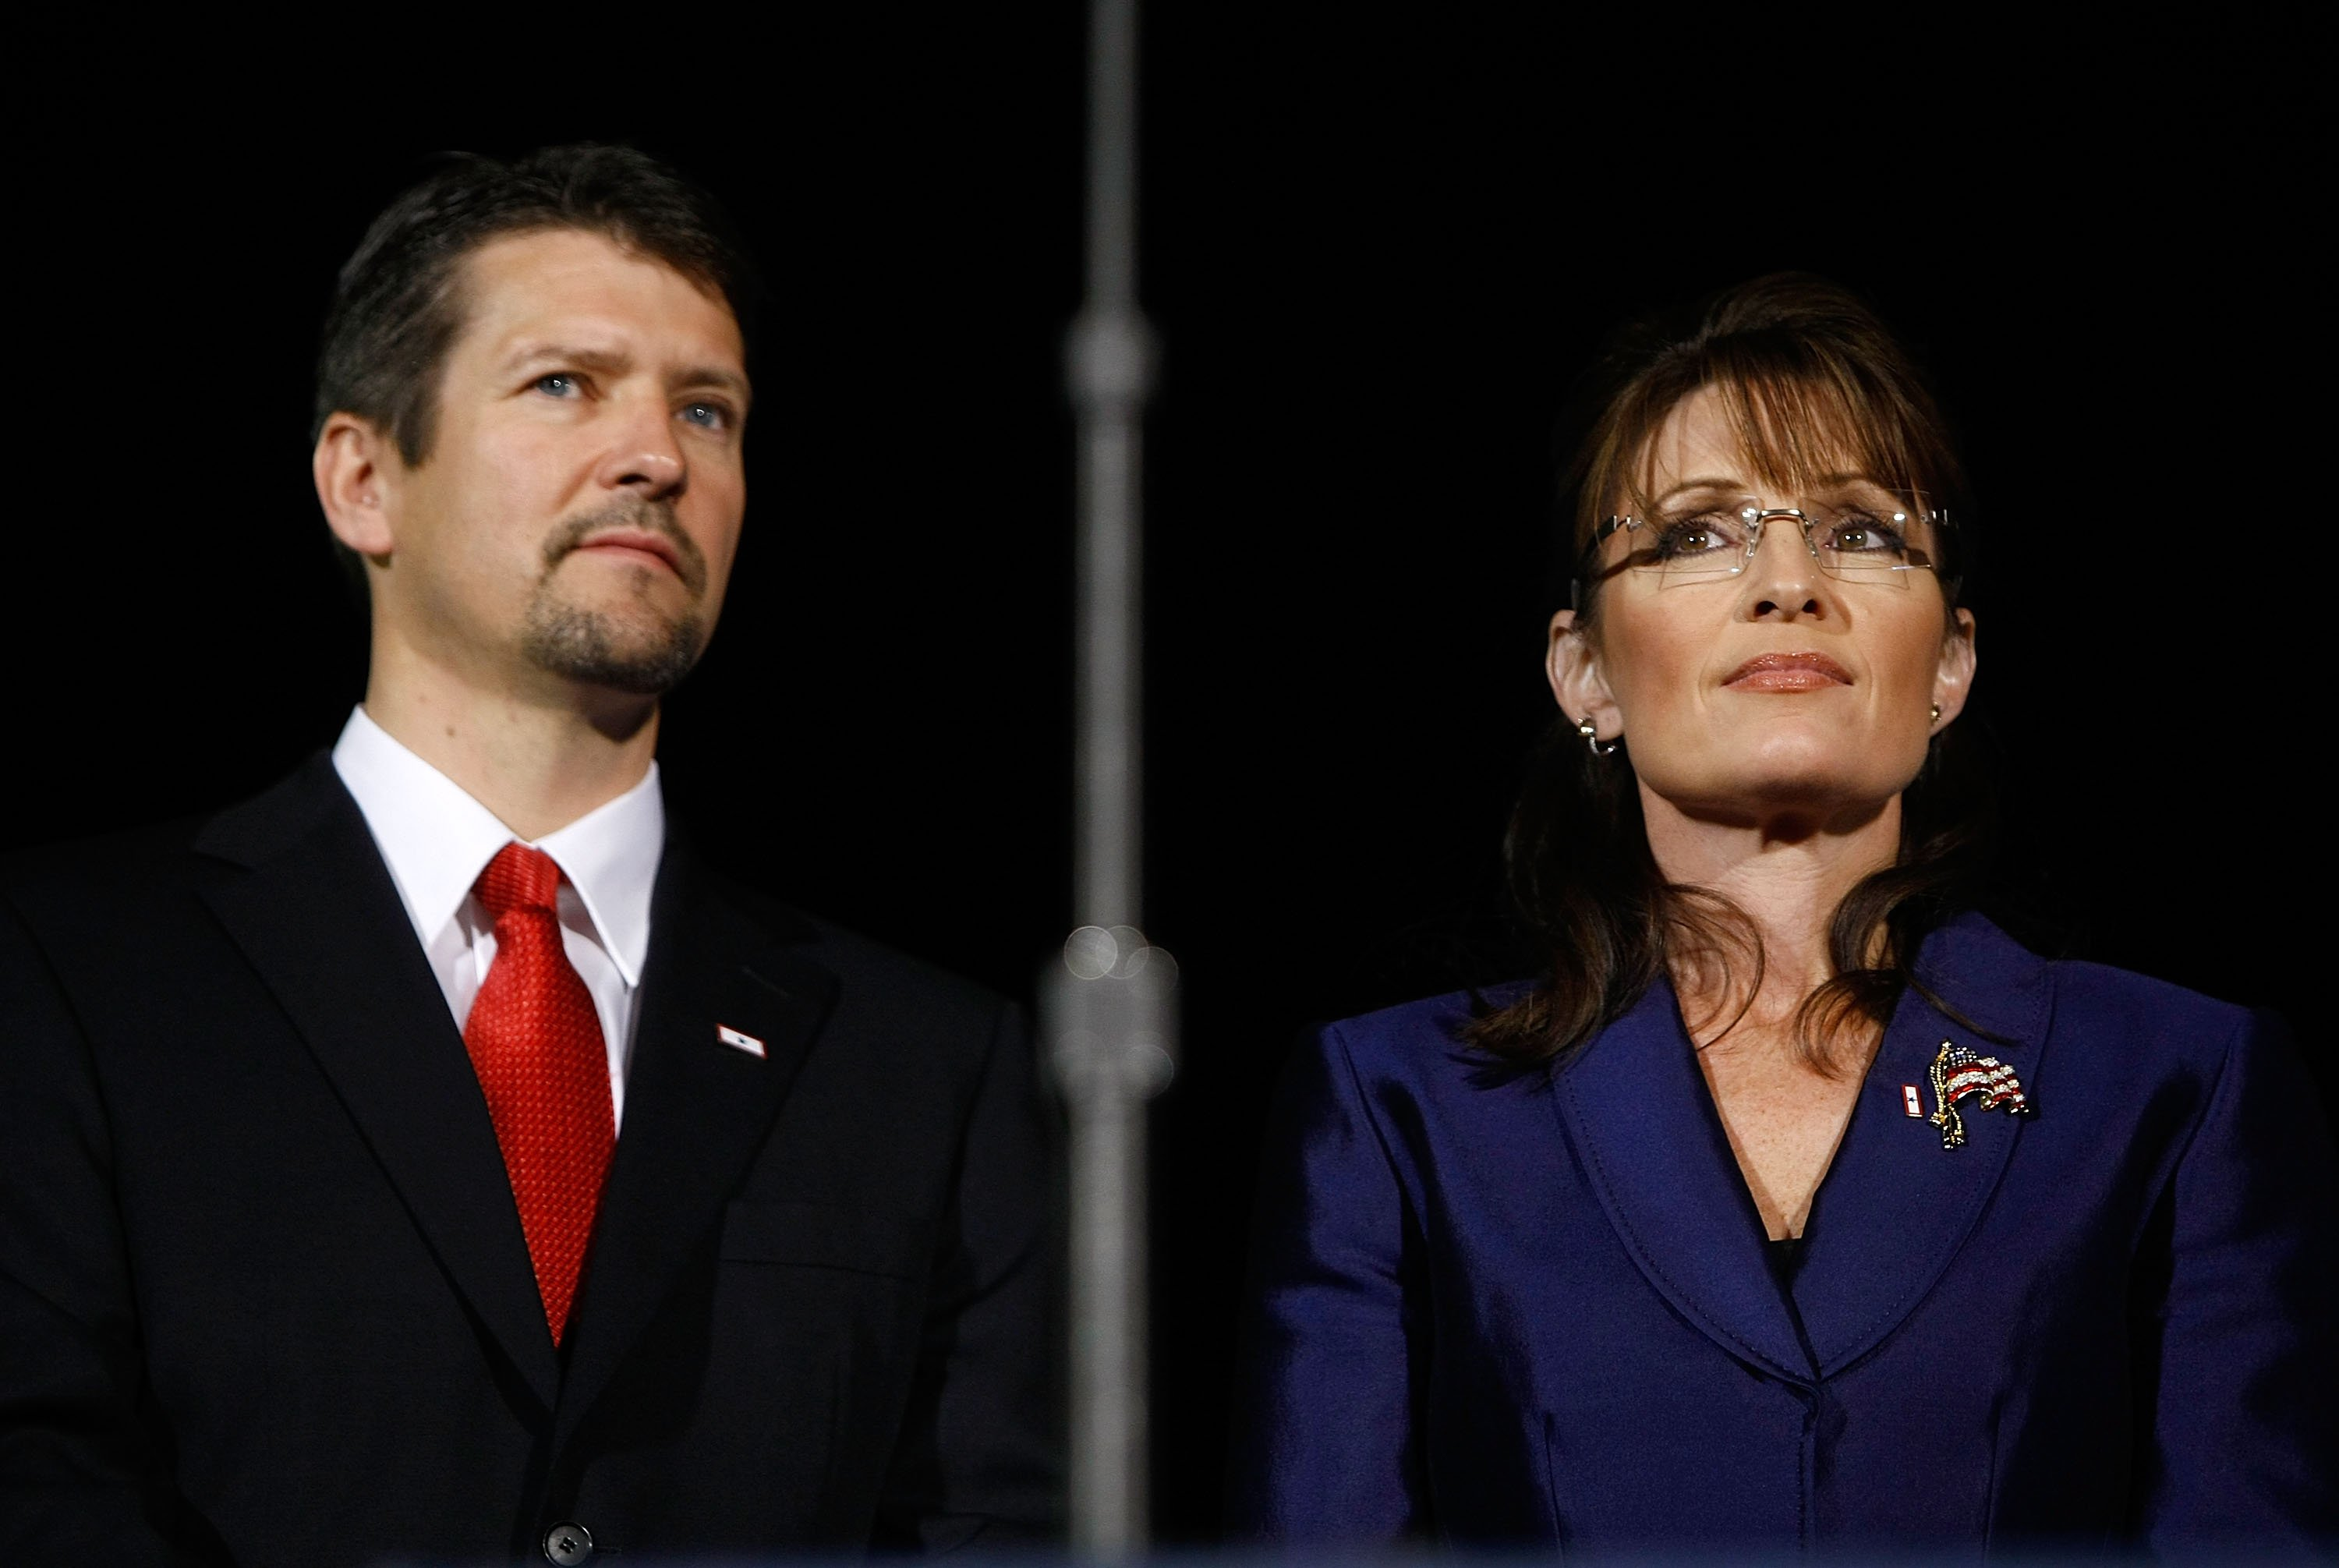 Sarah Palin and husband Todd Palin during the election night rally on November 4, 2008, in Phoenix, Arizona. | Source: Getty Images.